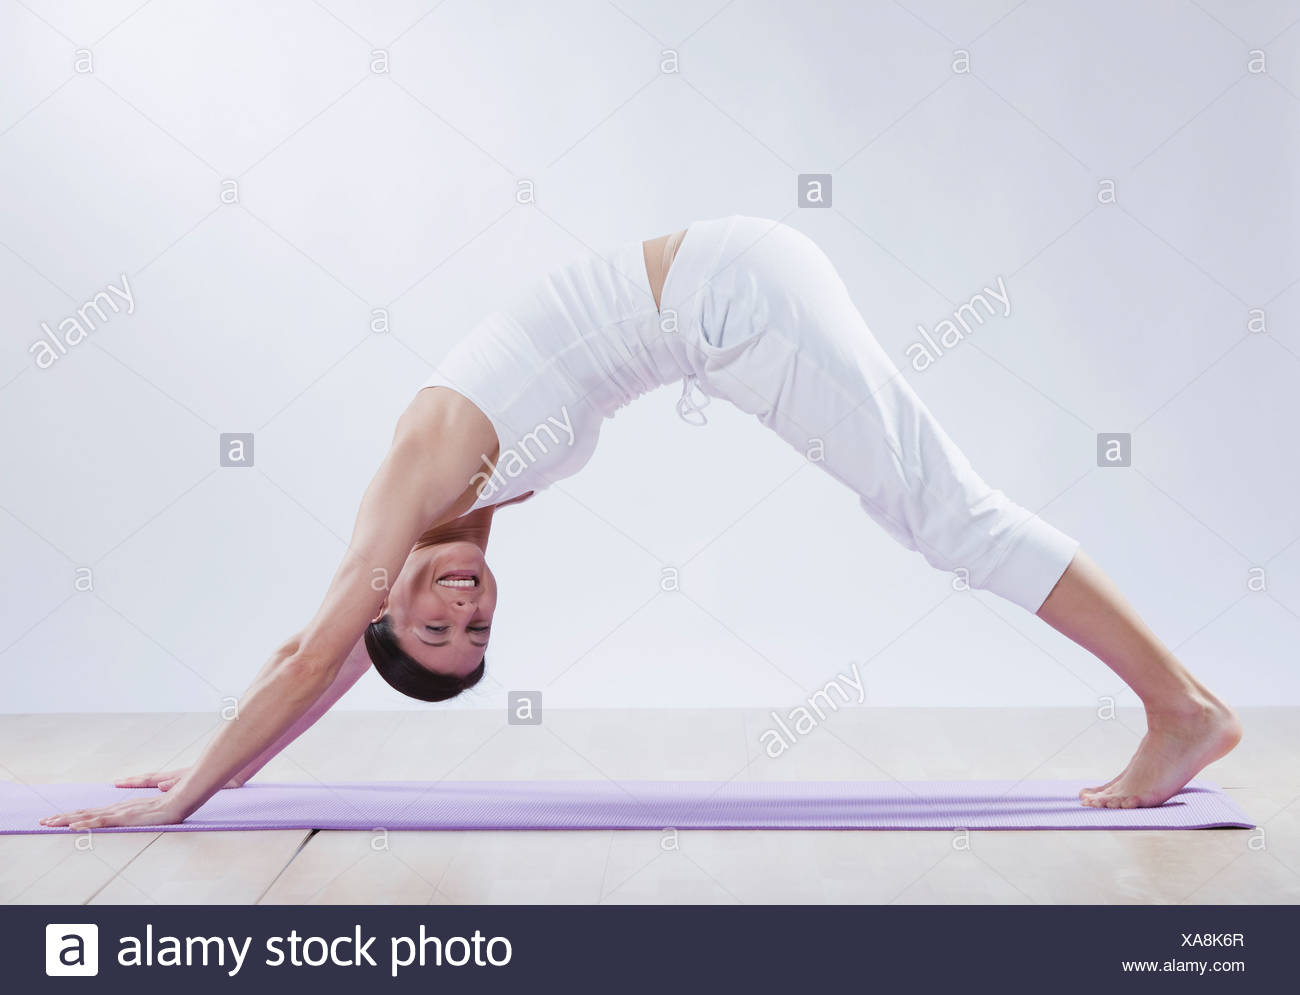 Mid adult woman doing downward facing dog position against white background, smiling, portrait - Stock Image